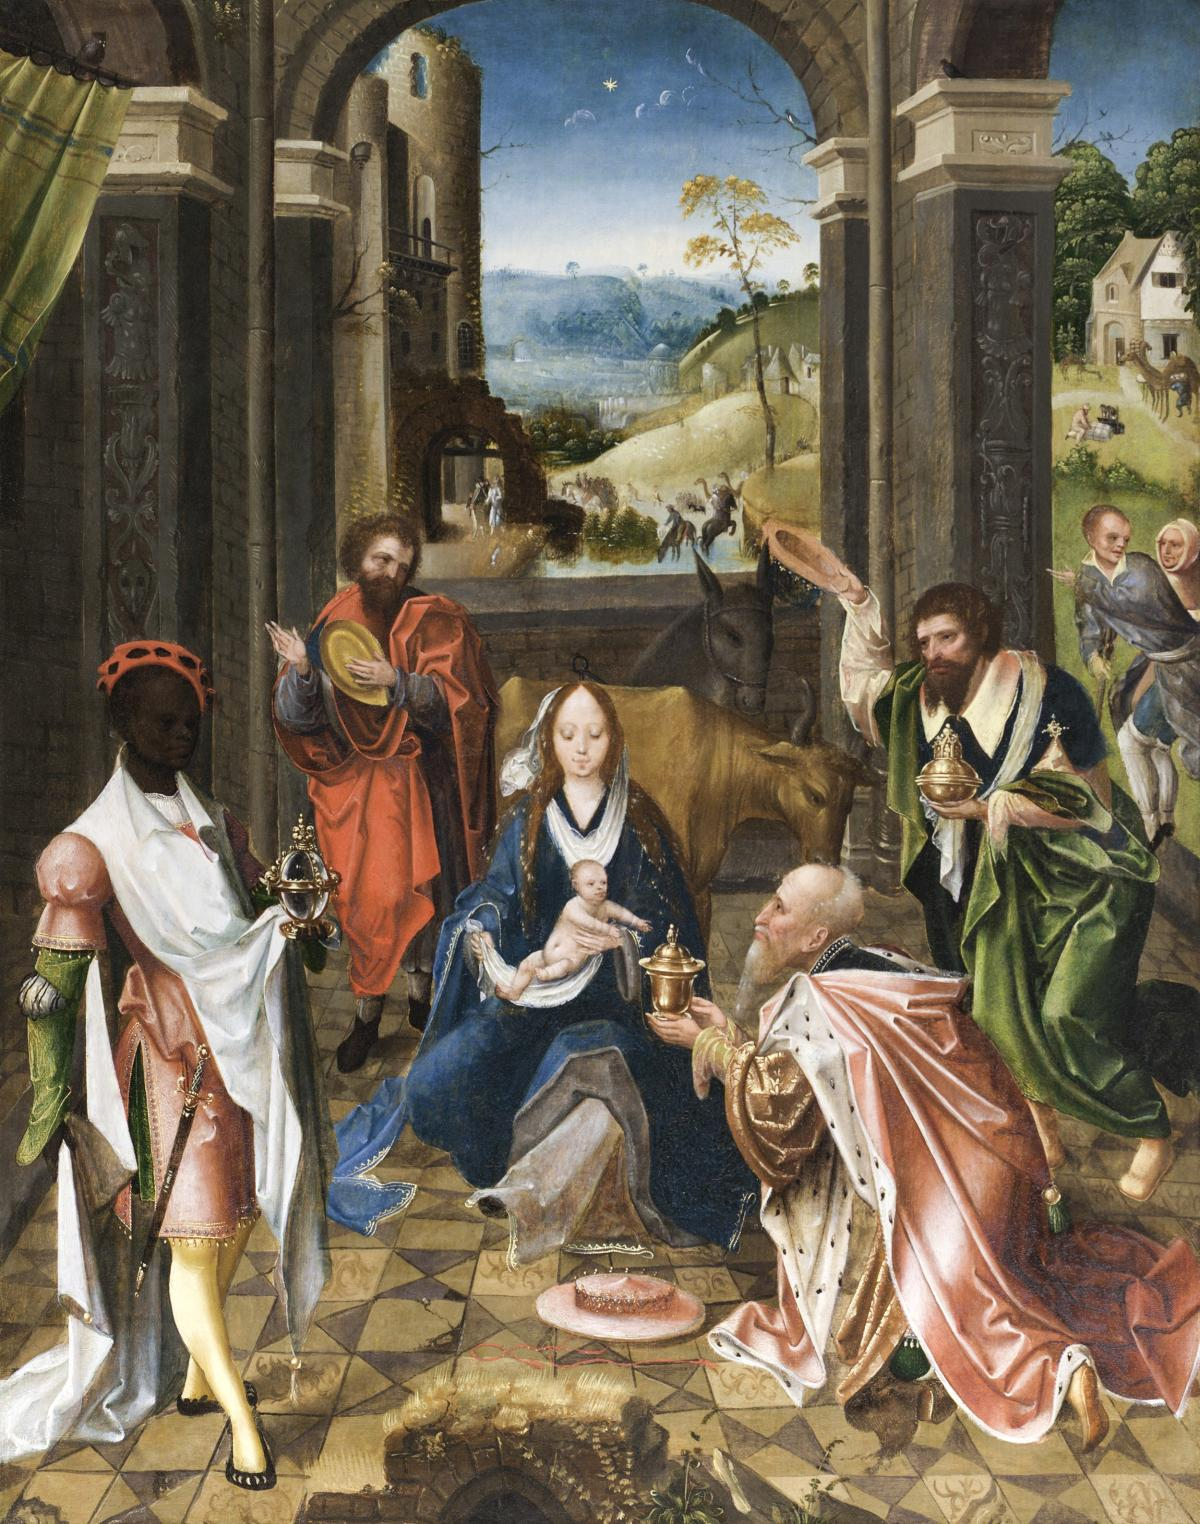 The Adoration of the Magi (ca. 1520) by Netherlandish (Antwerp Mannerist) Painter. Original from The MET Museum.